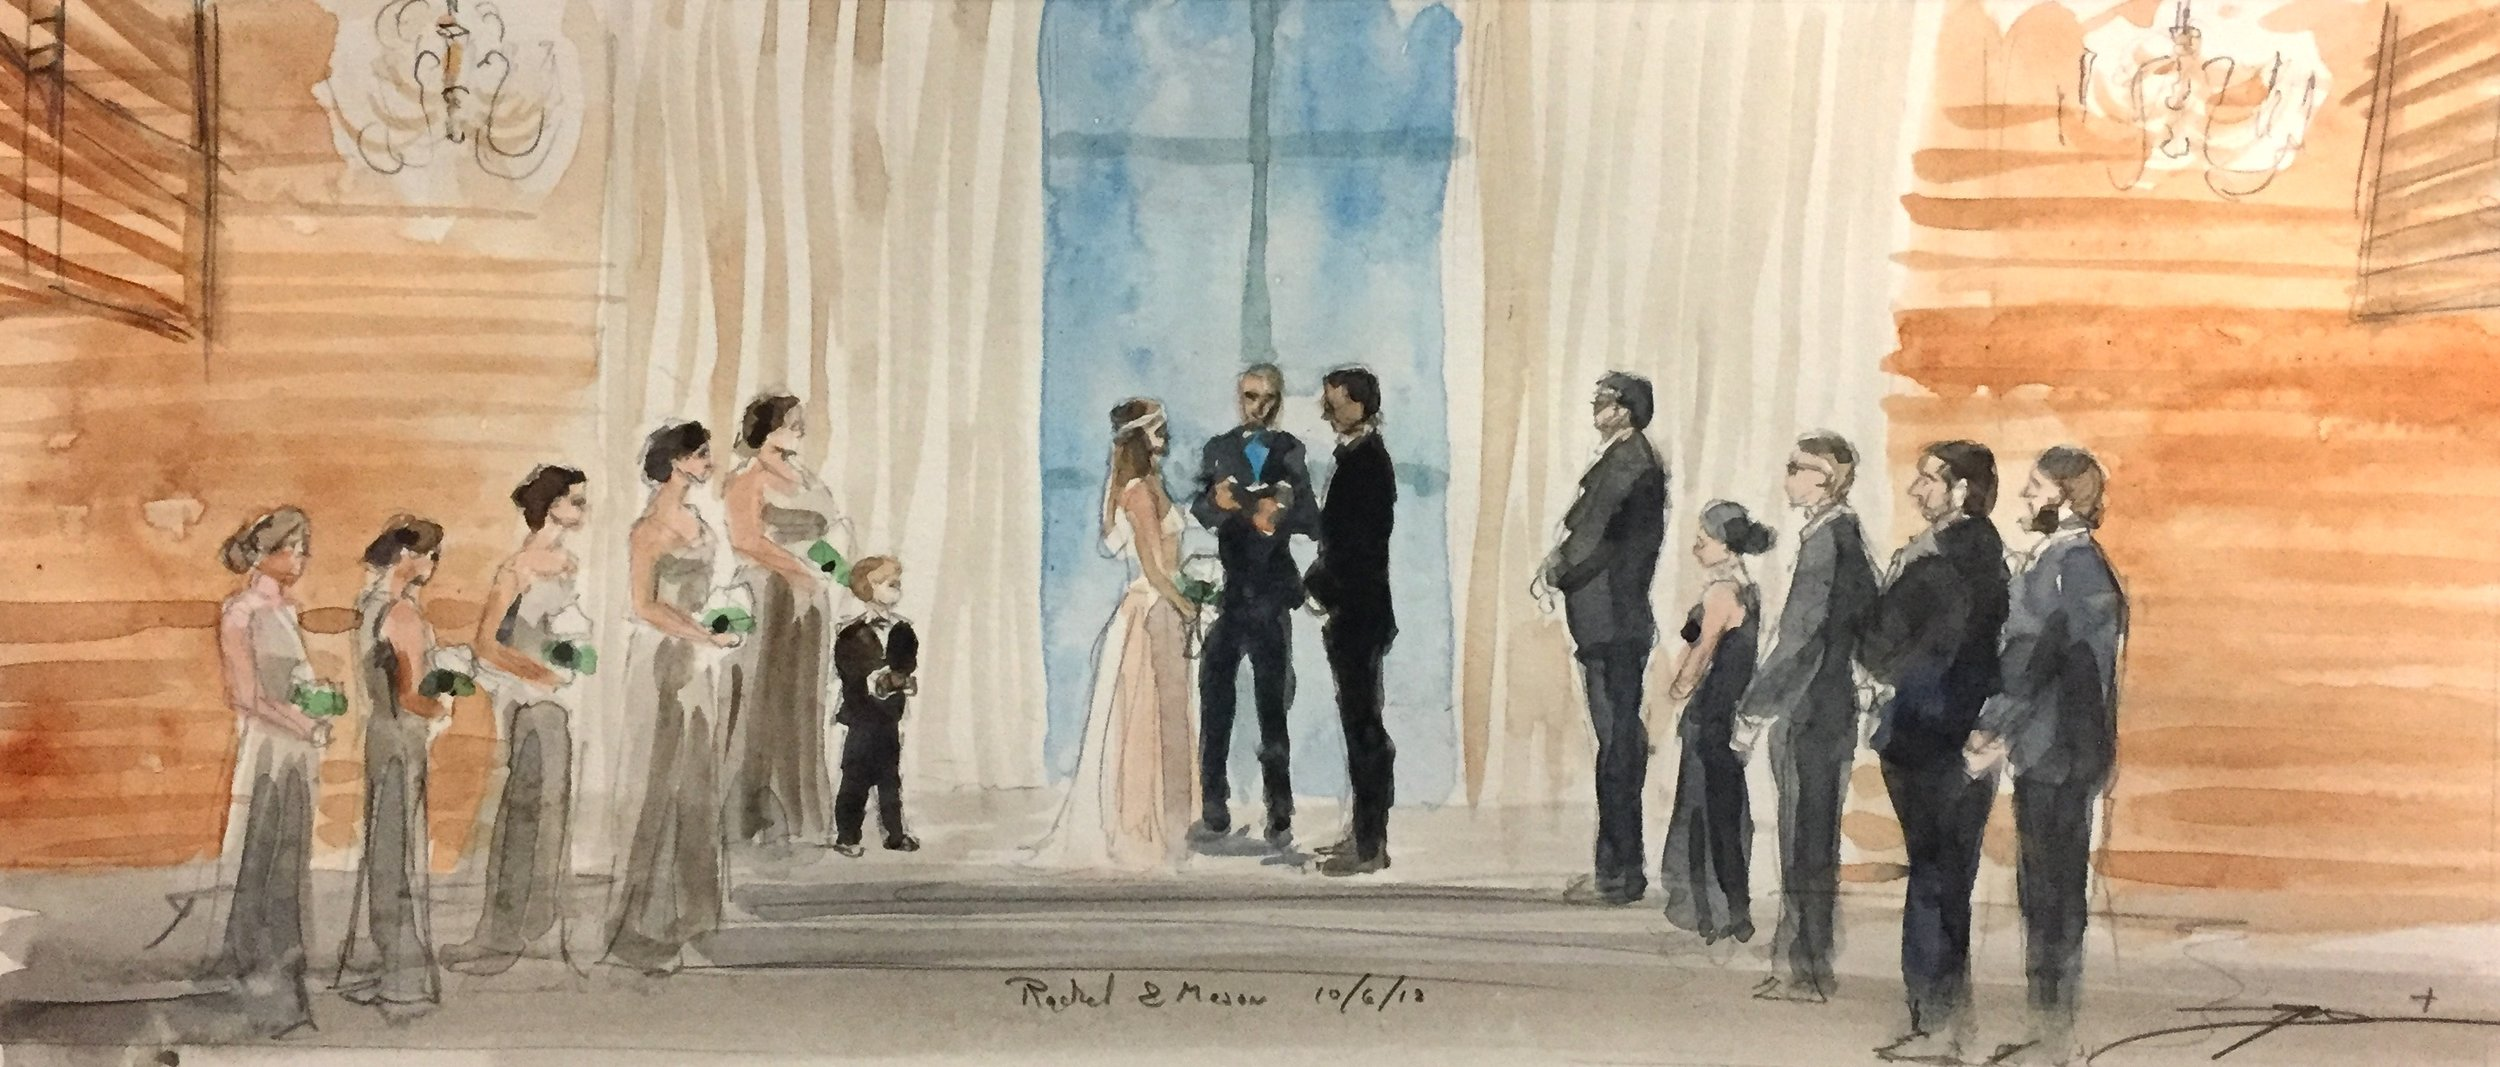 "The final of the wedding images was this past Saturday, 10.06.18, at the wedding of my cousin Rachel Gamble to Mason Lechner. I was able paint this watercolor of the wedding party between the ceremony and the reception while the couple took pictures, since it was all at the same venue. It was such a joy to catch them totally off guard and hand them the painting during the dance party, and have them do a double, triple take… ""wait… that's US… that's right NOW! How did you do that?!"" Painting fast has pros and cons, but it really is special to capture a moment in real time and give a gift that my cousin and her new husband can appreciate for a lifetime."